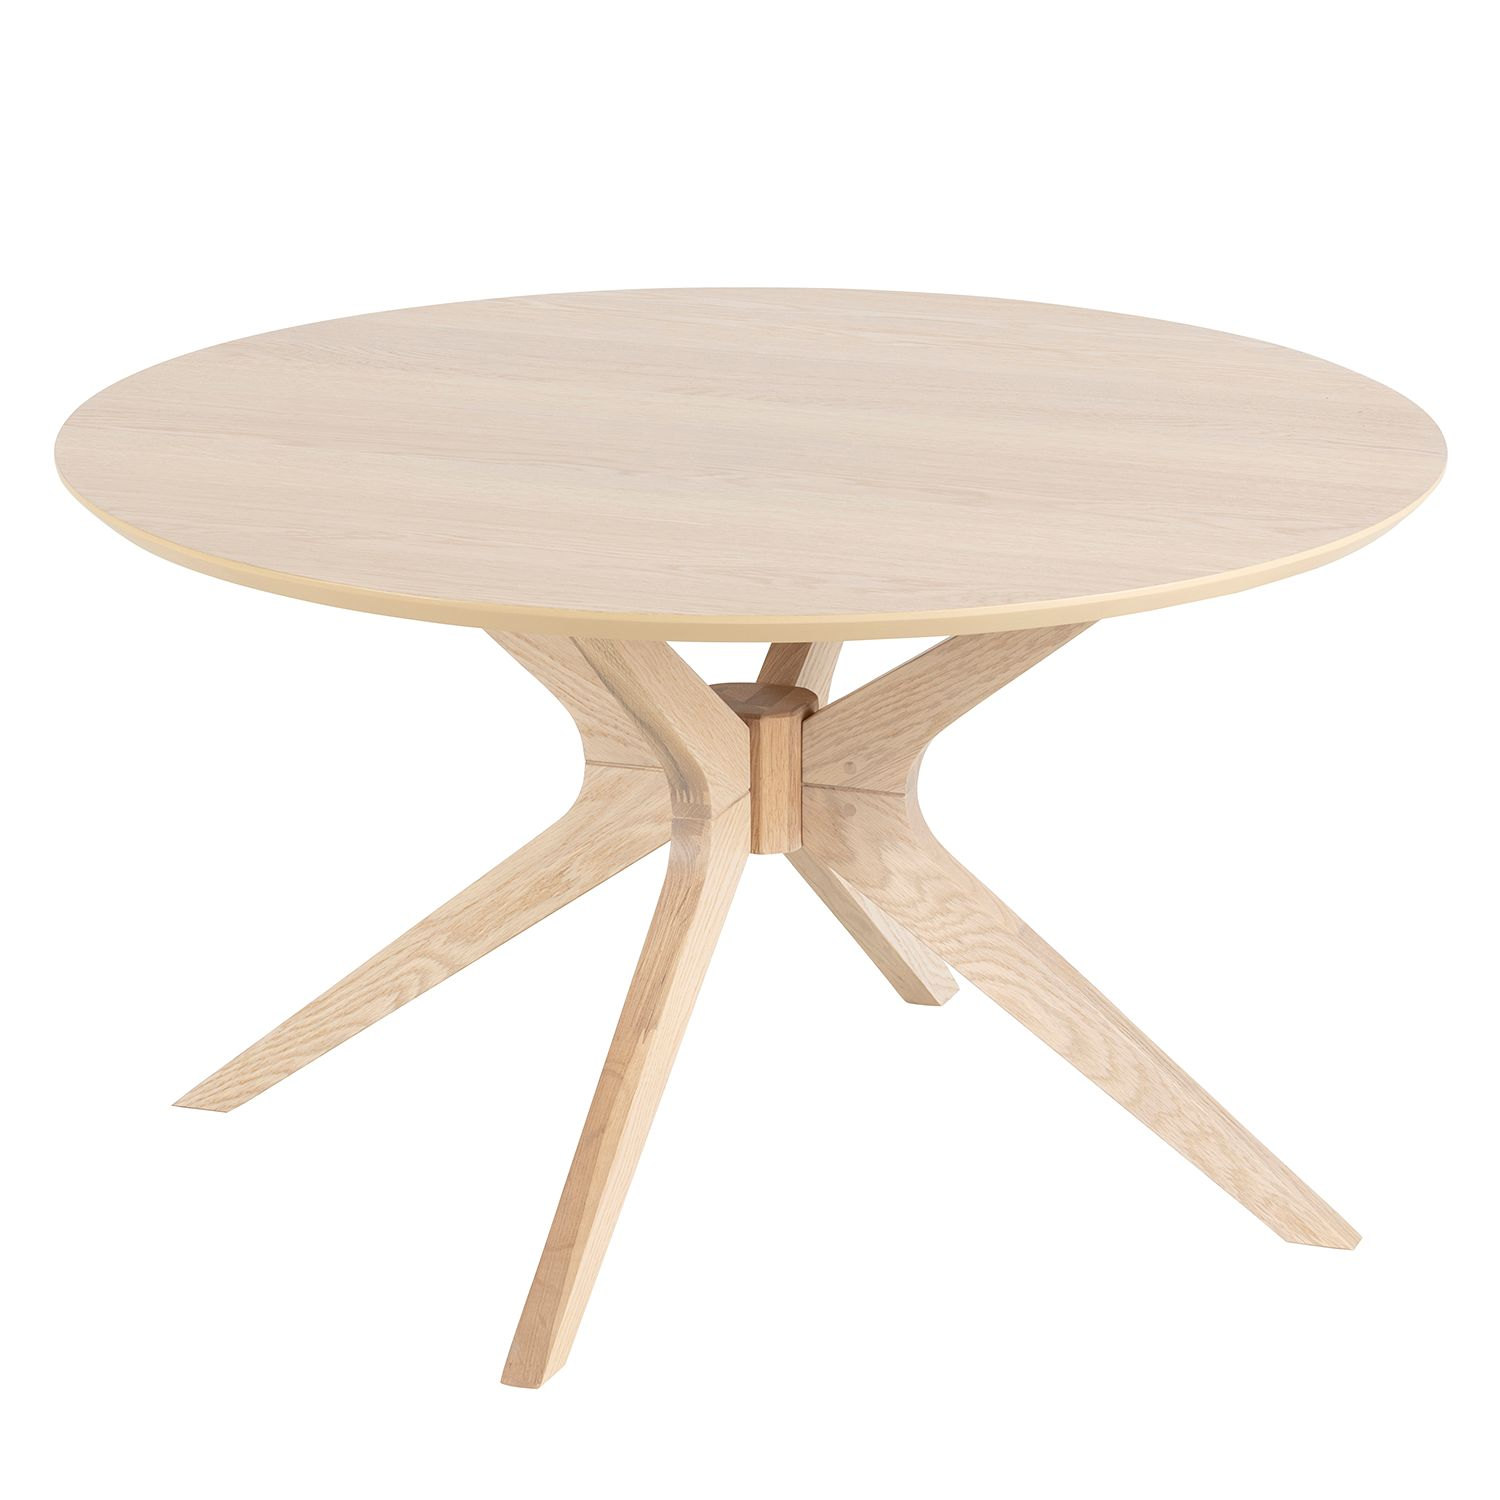 Table basse Skalavik I